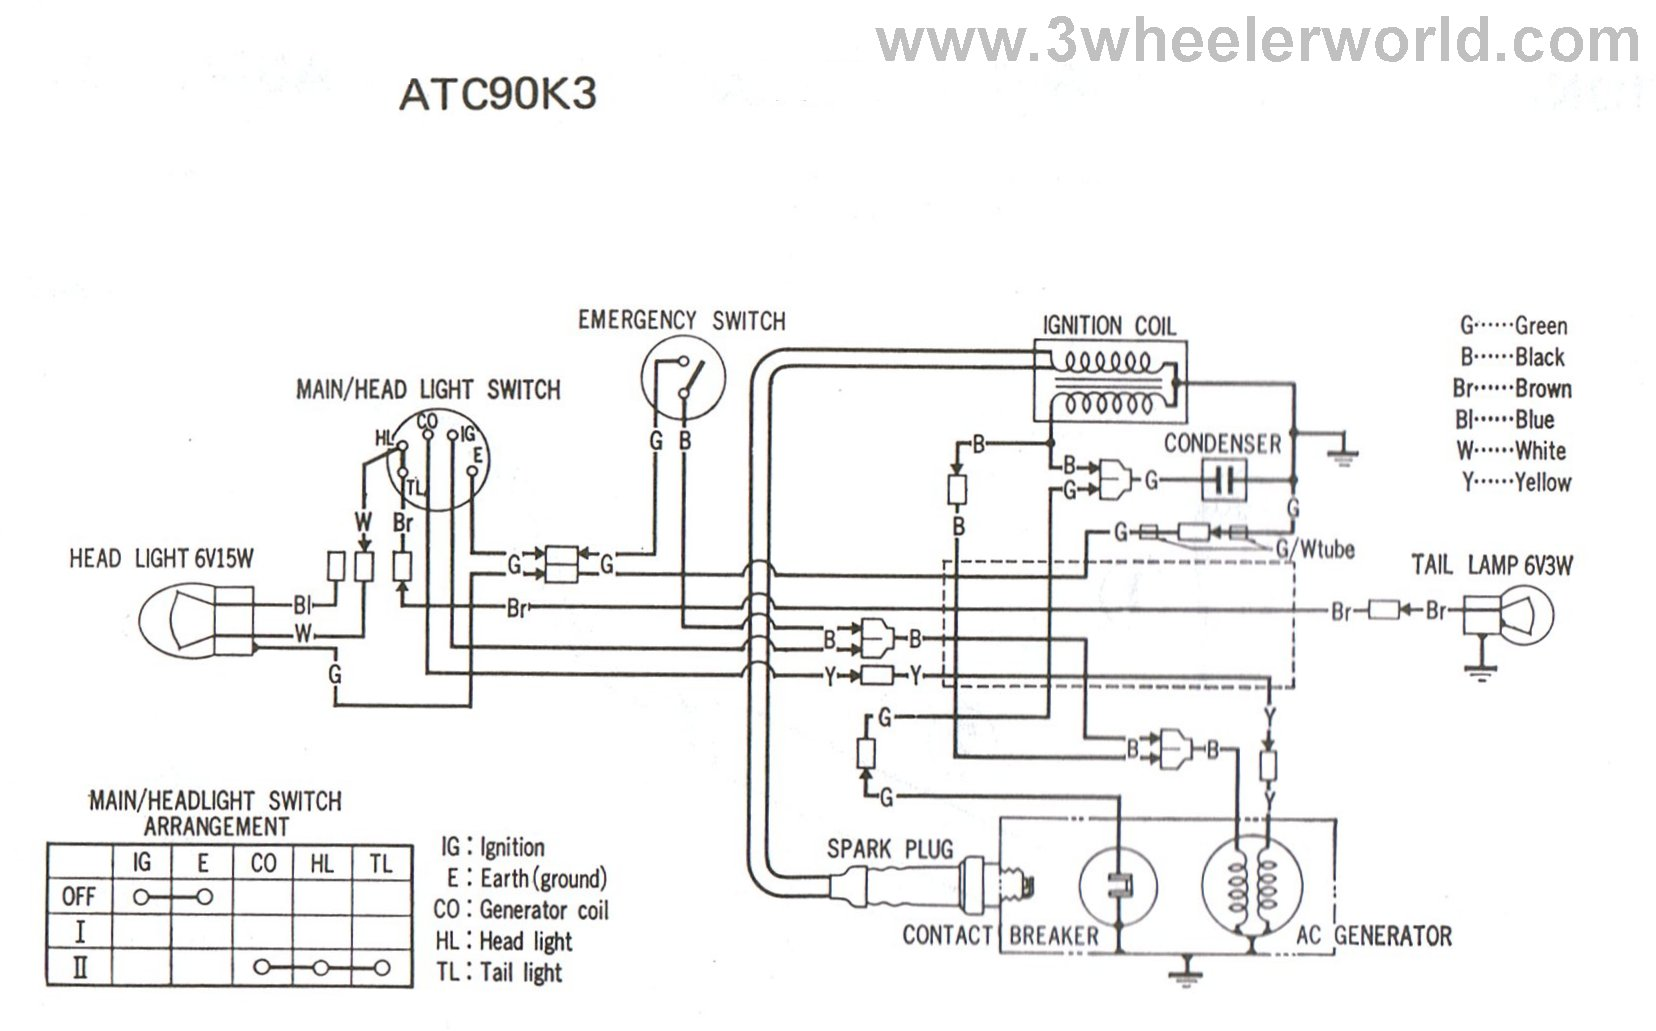 hight resolution of honda xr80 wiring diagram wiring diagrams konsultwiring diagram 1997 honda xr80 wiring diagram for you honda